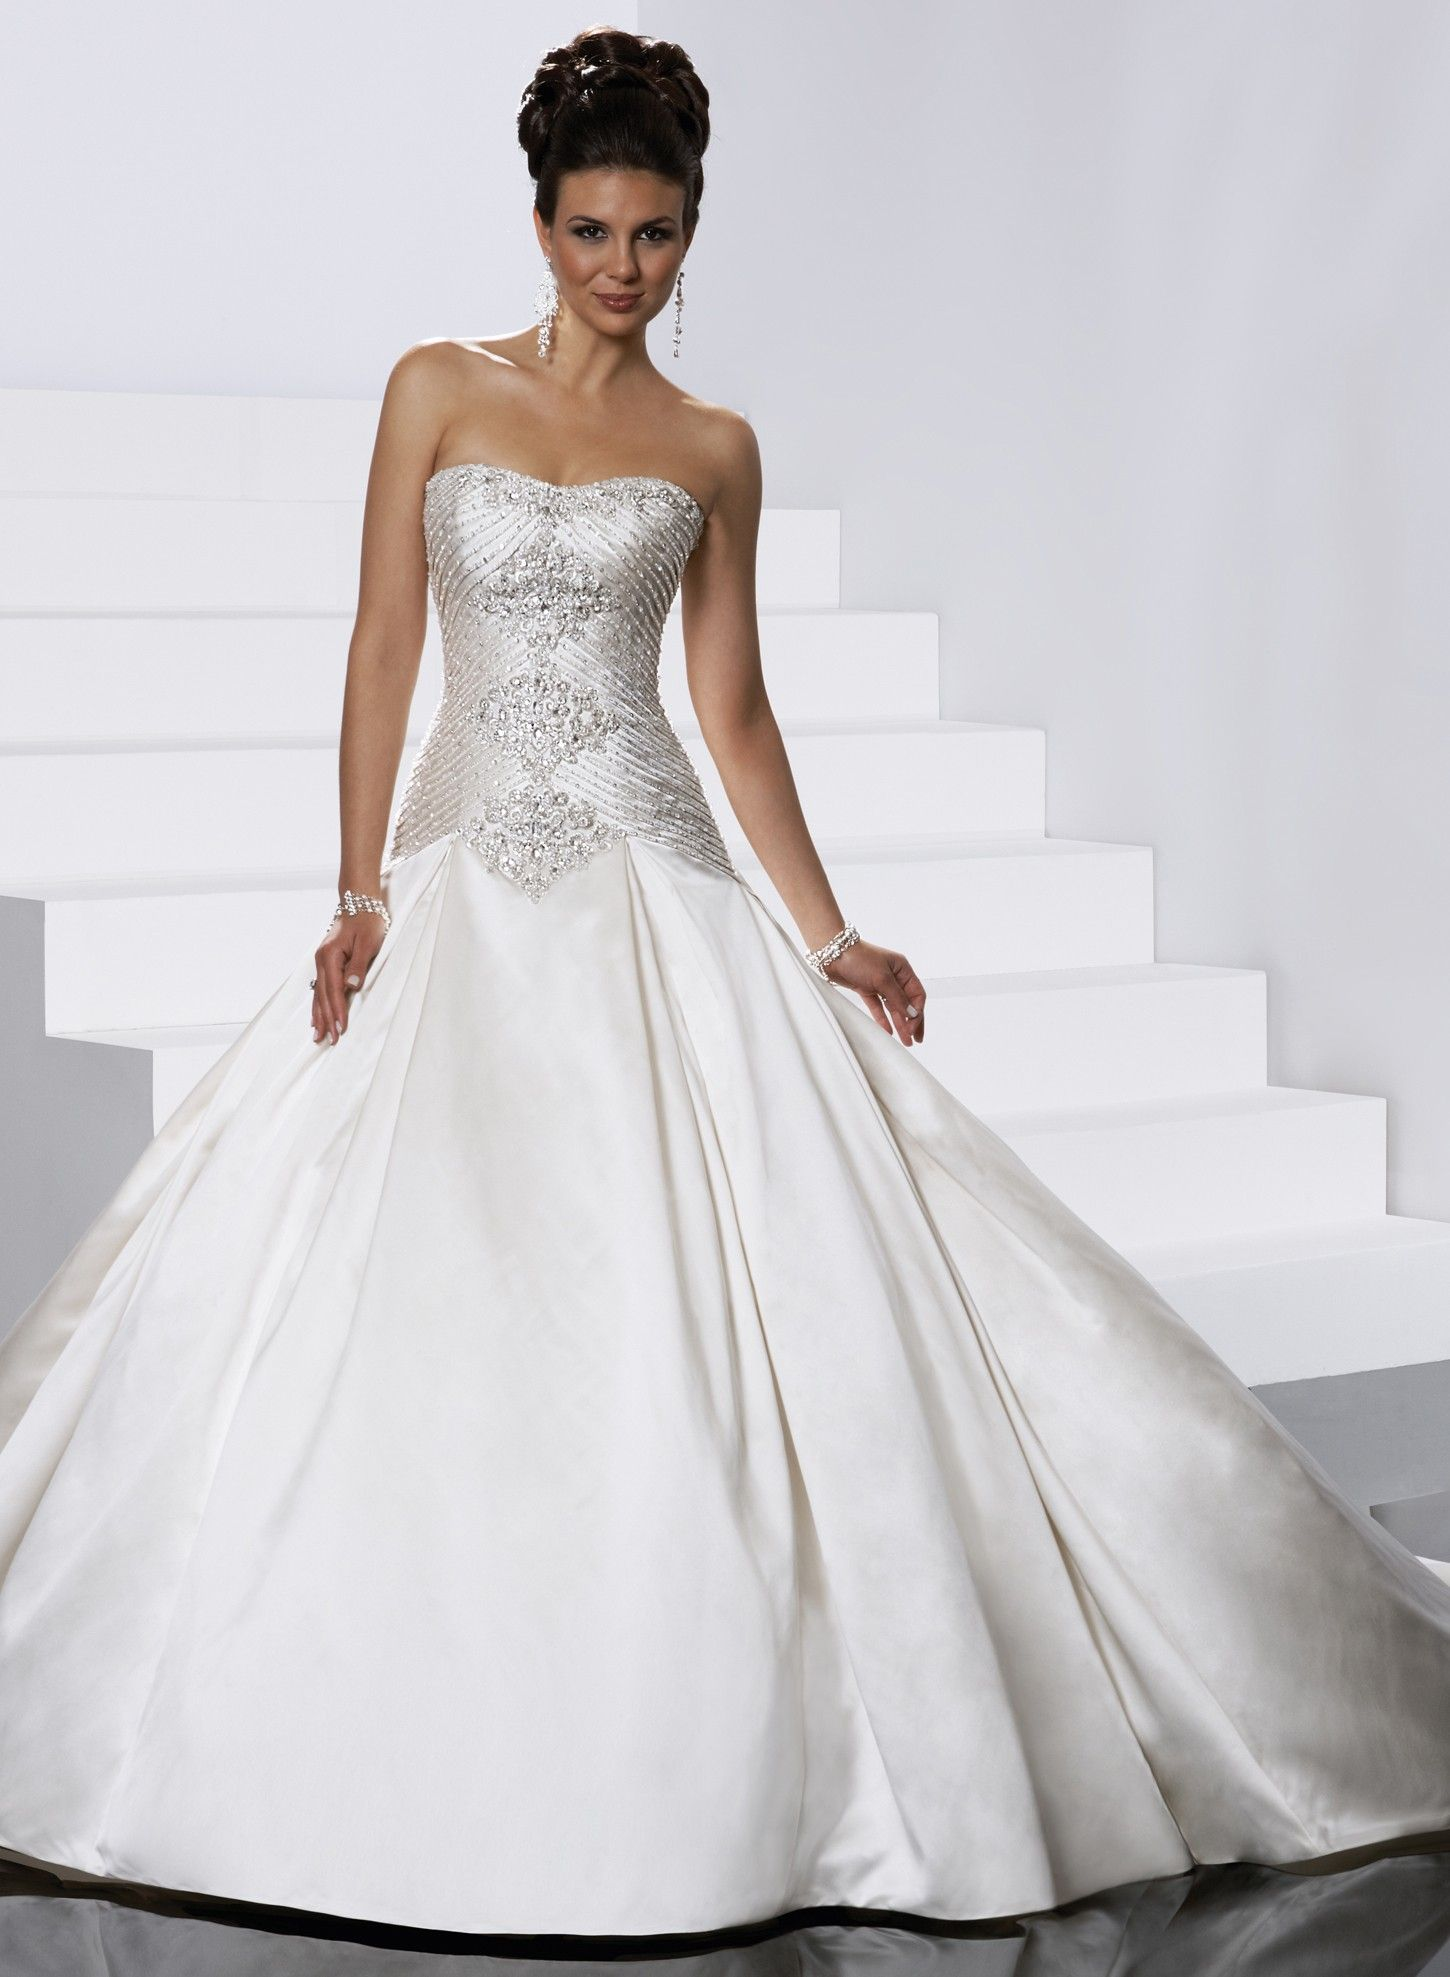 17 Best images about Ball Gown Wedding Dresses on Pinterest ...